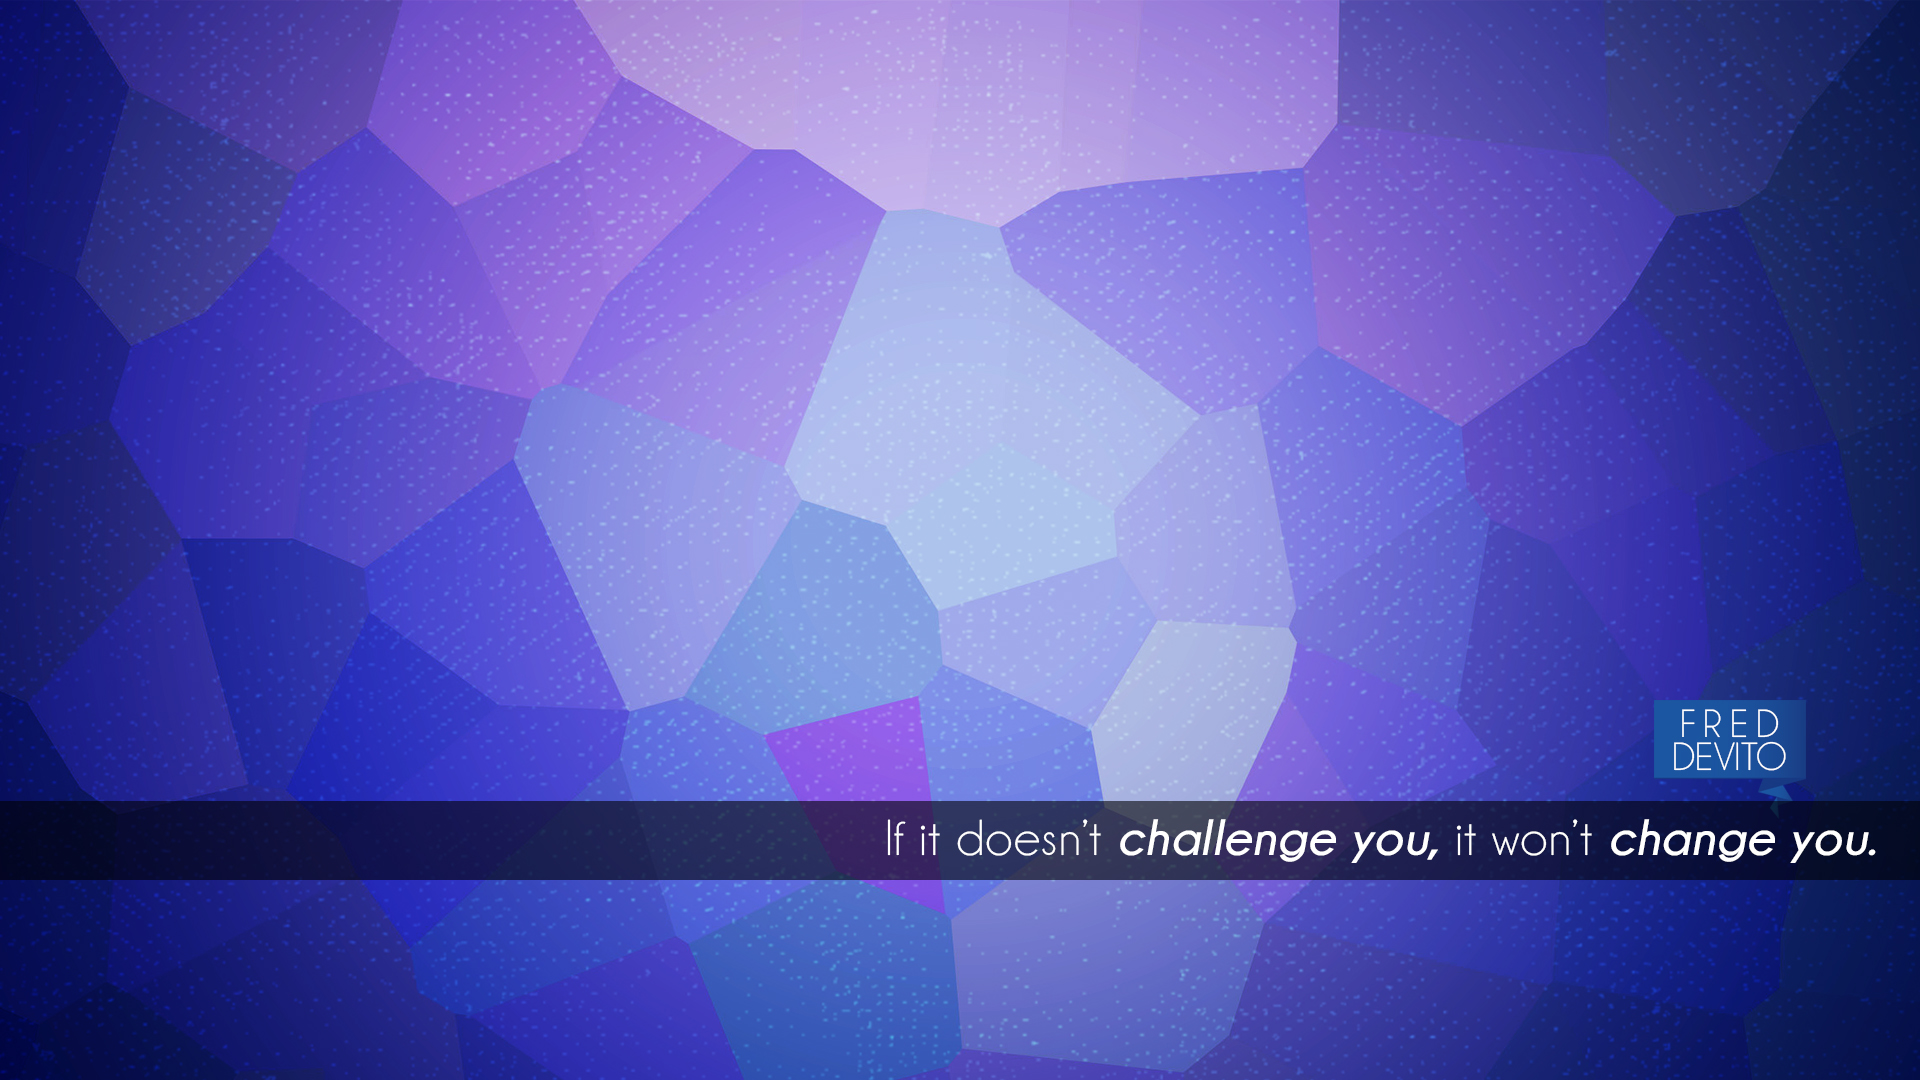 If it doesn't challenge you, it won't change you. Fred Devito